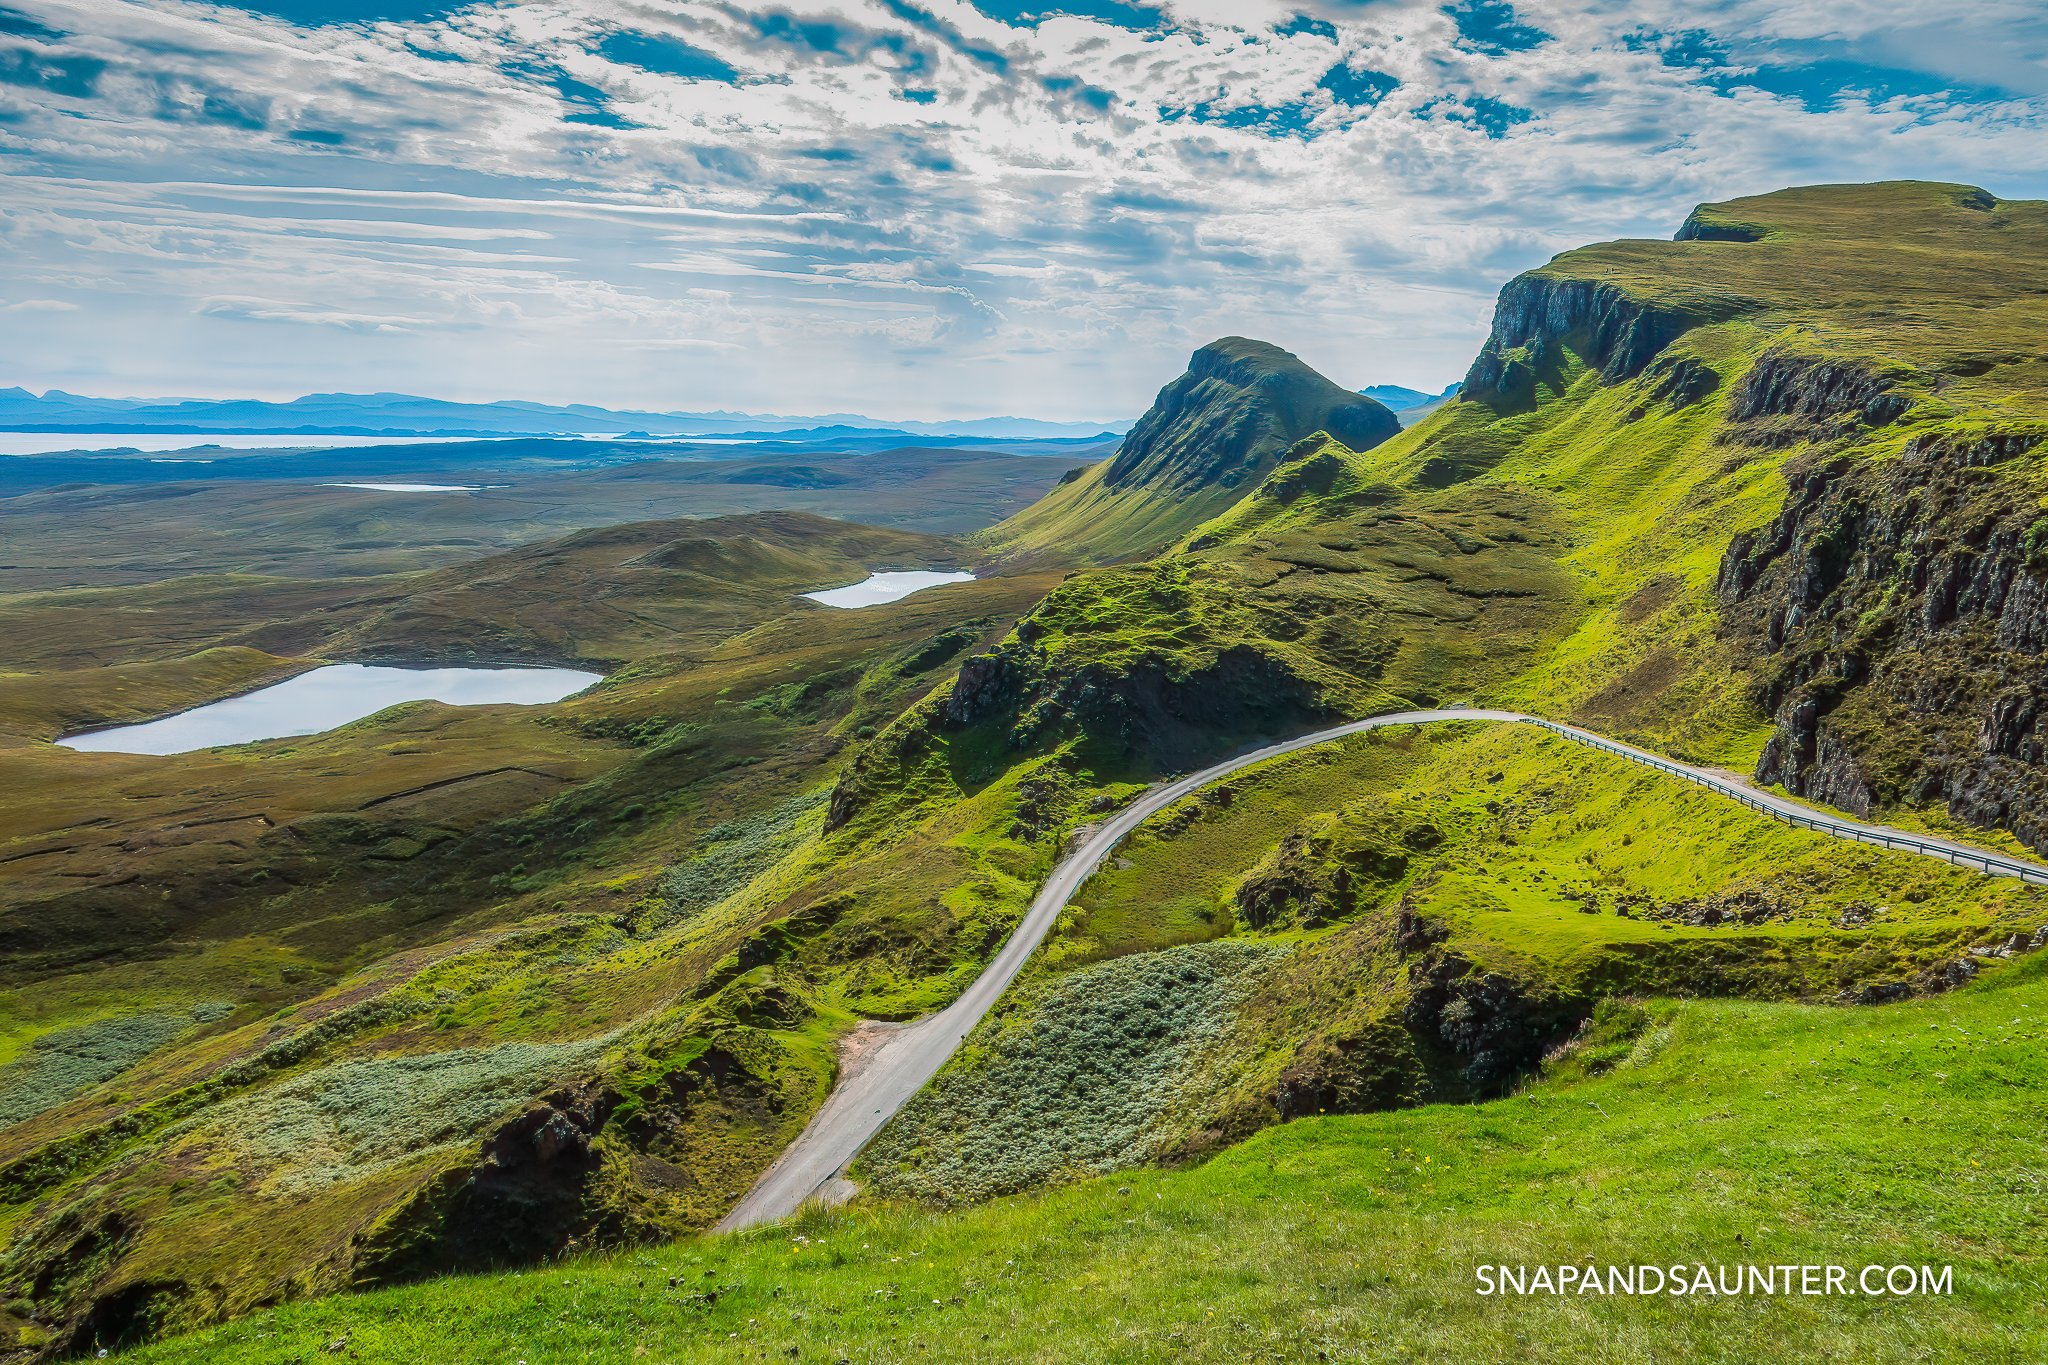 Dramatic landscape of Quiraing on the Isle of Skye in Scotland